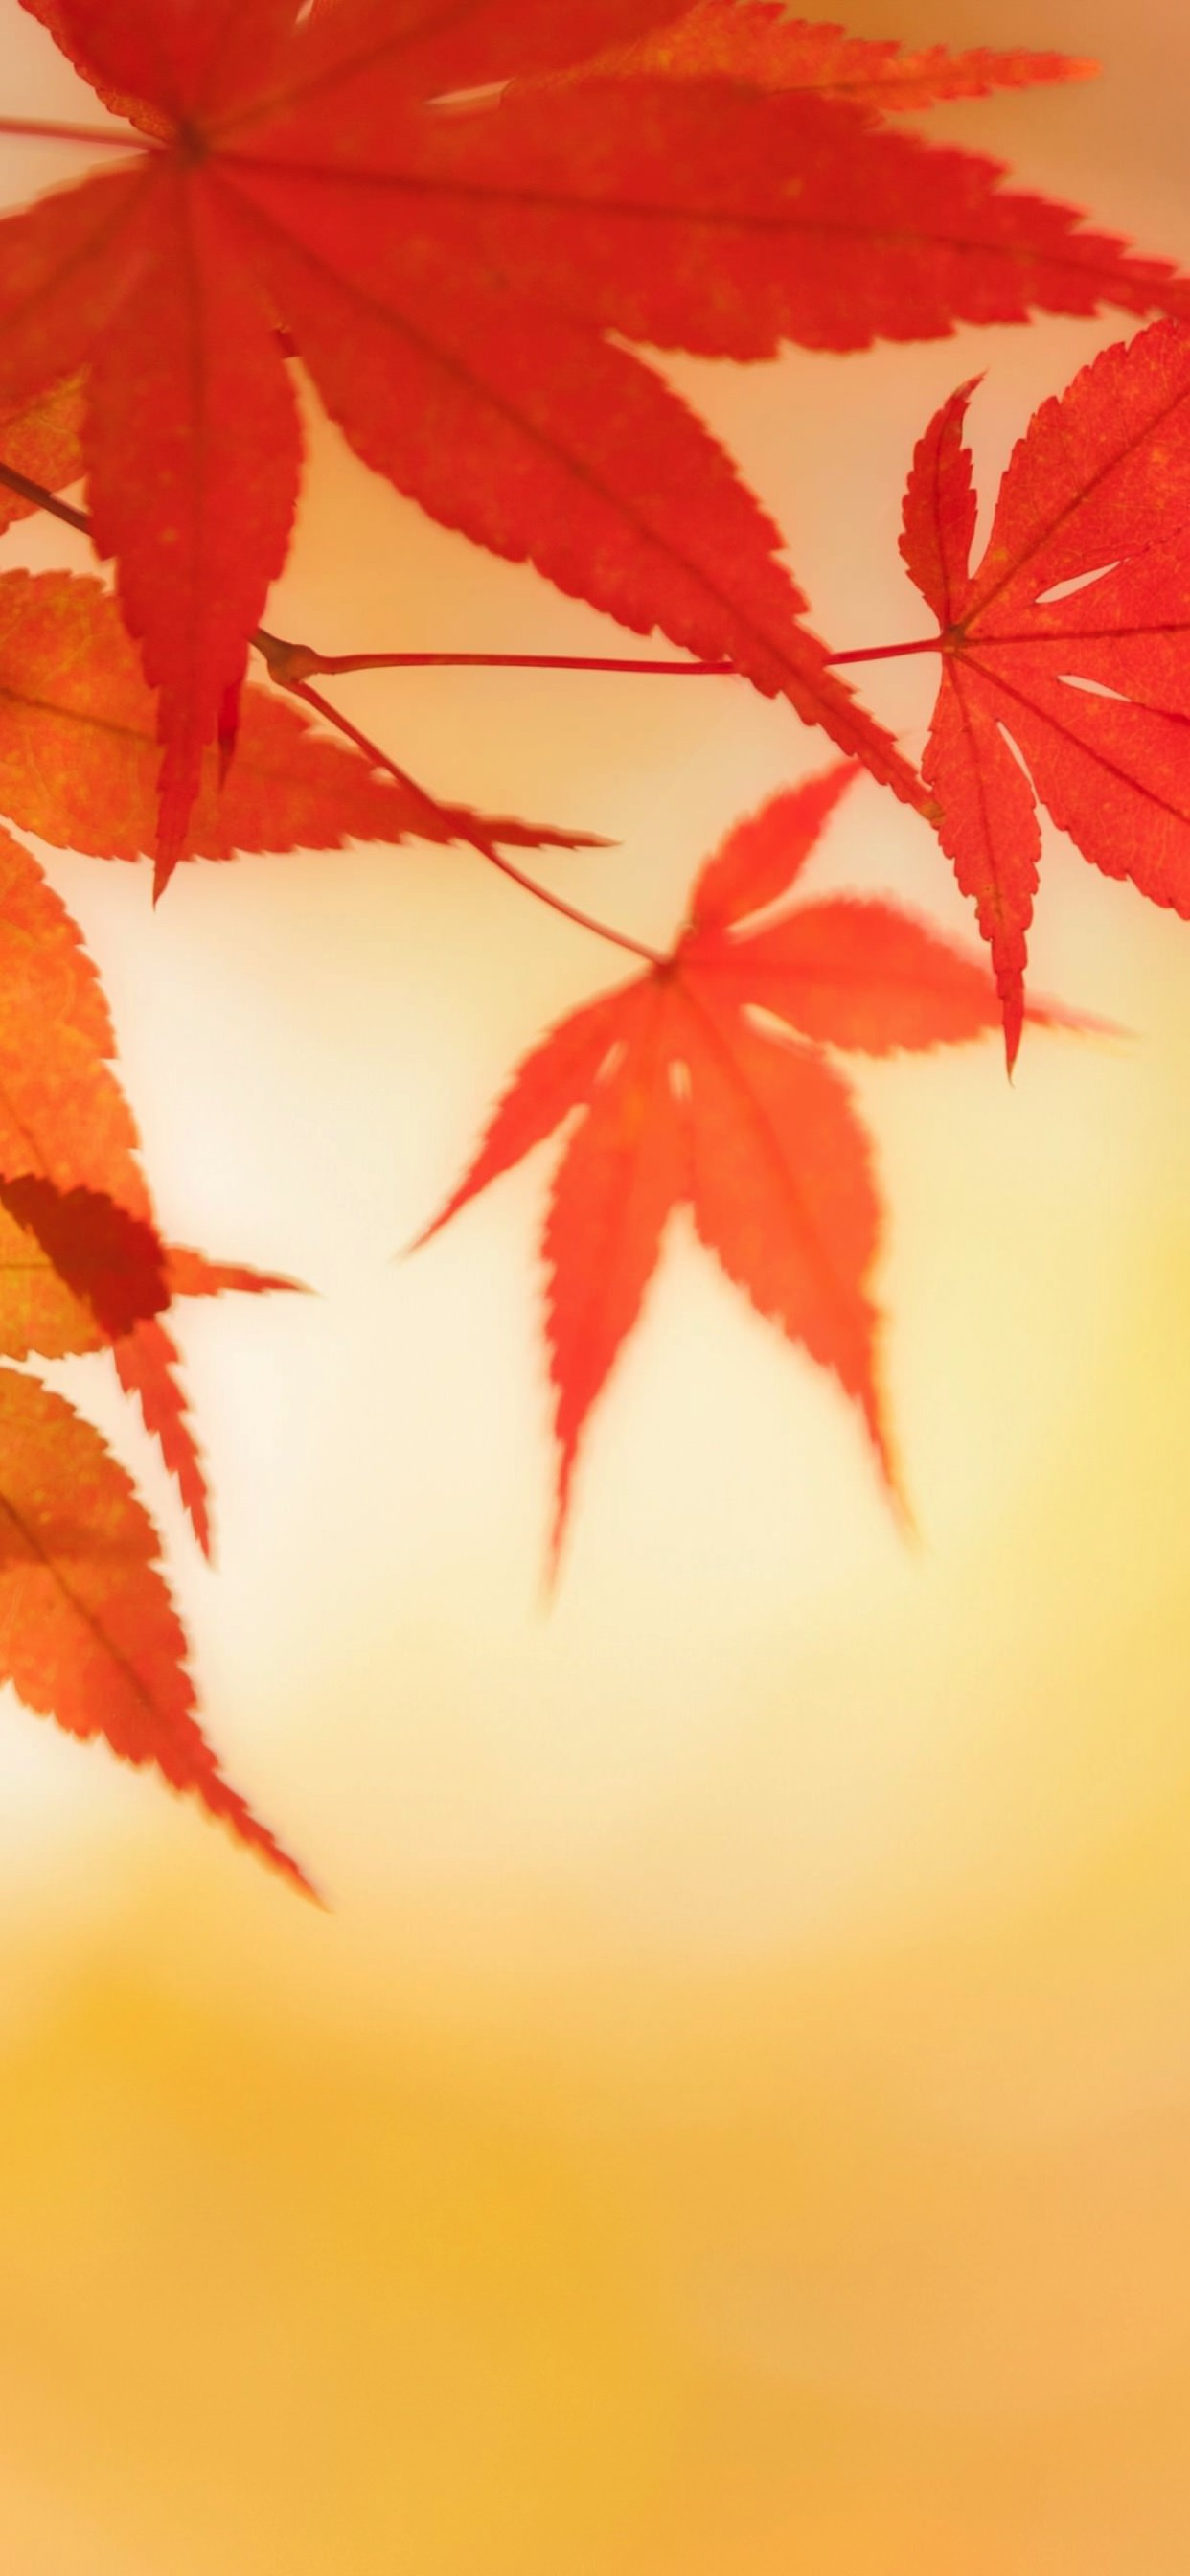 自然紅葉 Wallpaper Sc Iphone Xs Max壁紙